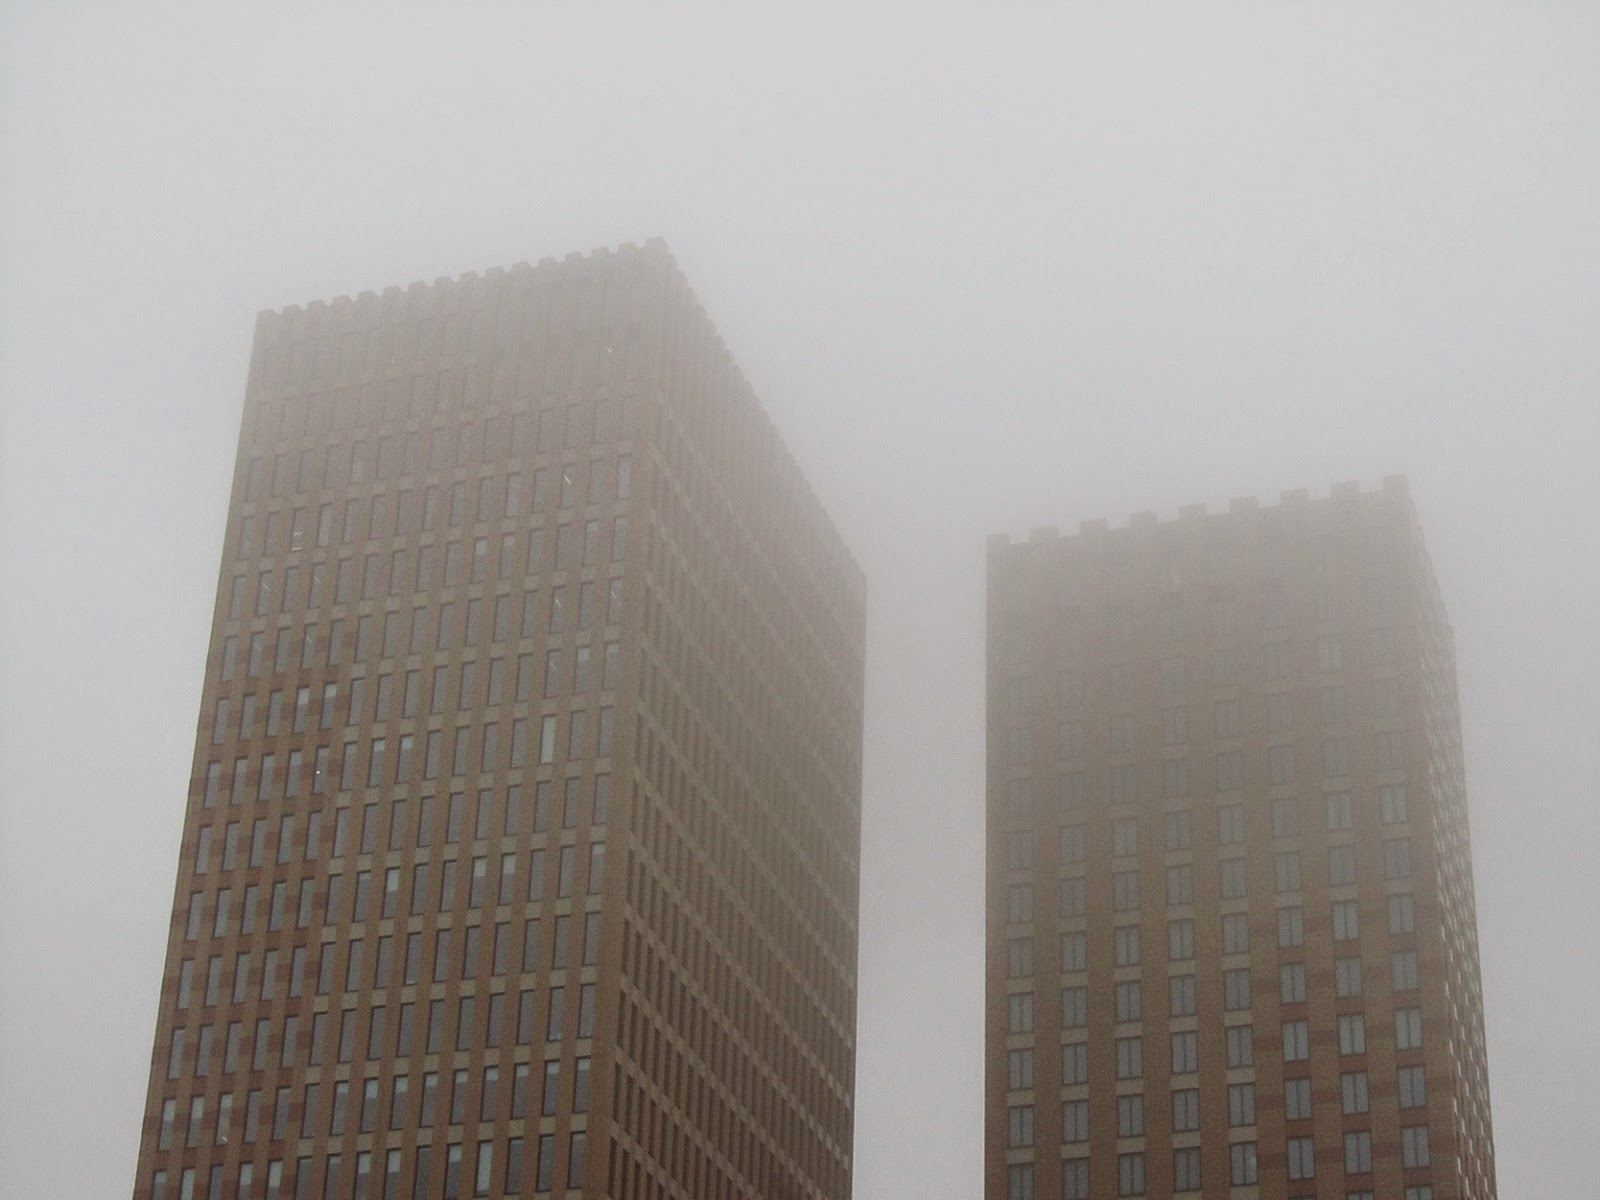 two towers in the mist